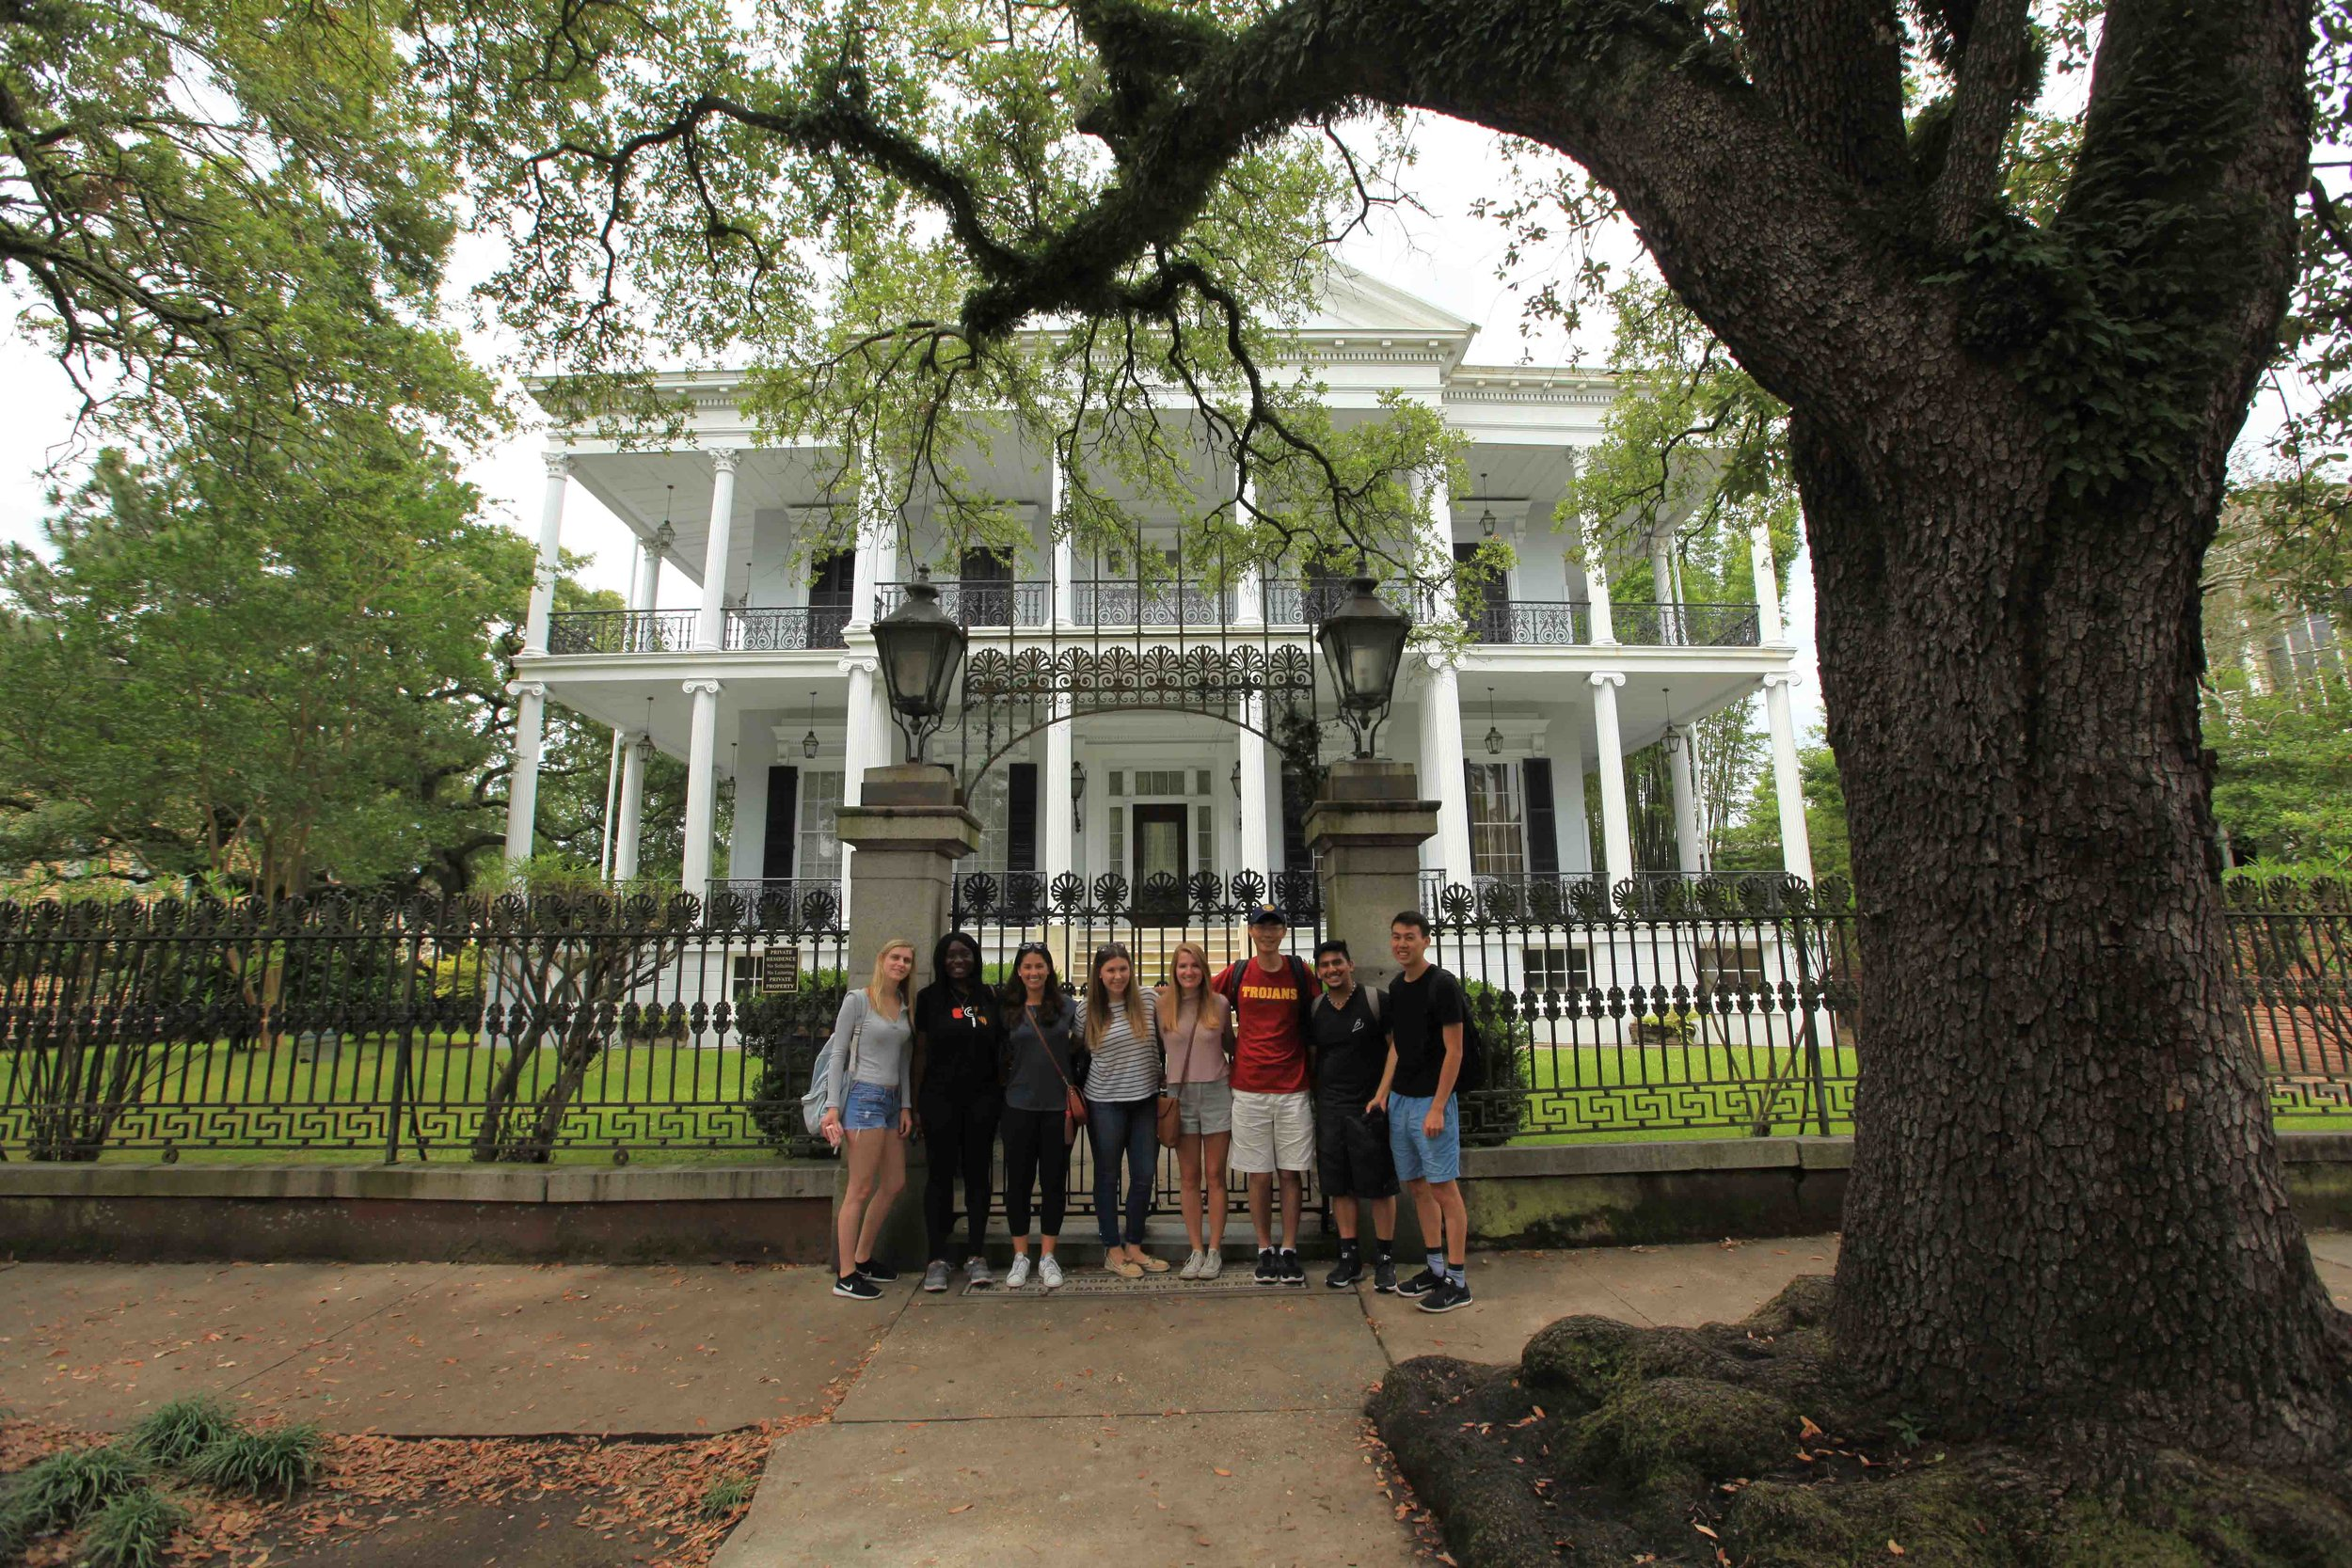 This was the house used as the 'Coven House' in the FX series 'American Horror Story'.